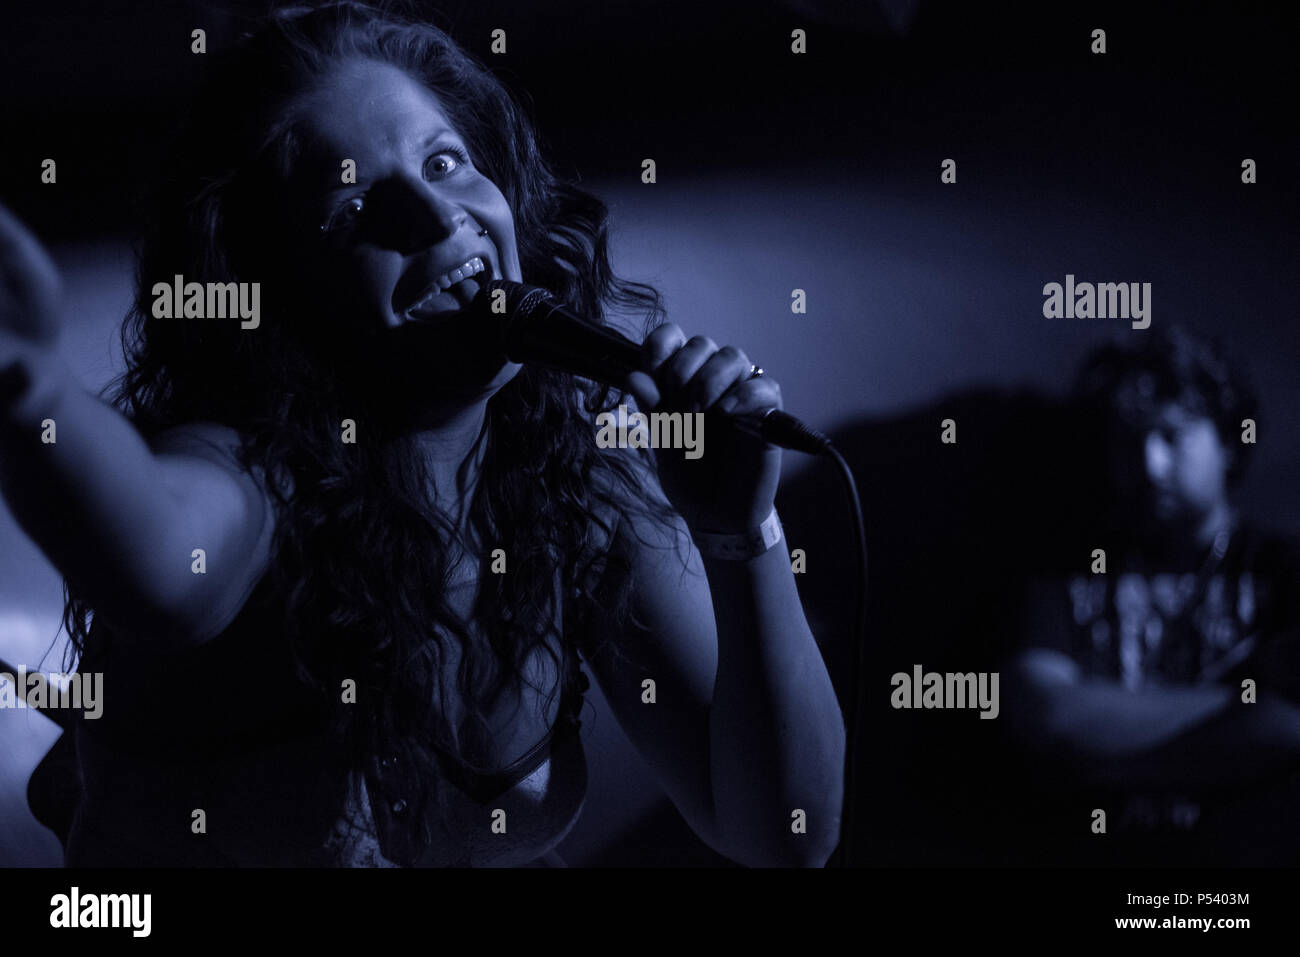 Suvi Uura, Lead singer of the Finnish metal band Dorothy Polonium, on stage Looking at the camera in low key bluish light - Stock Image